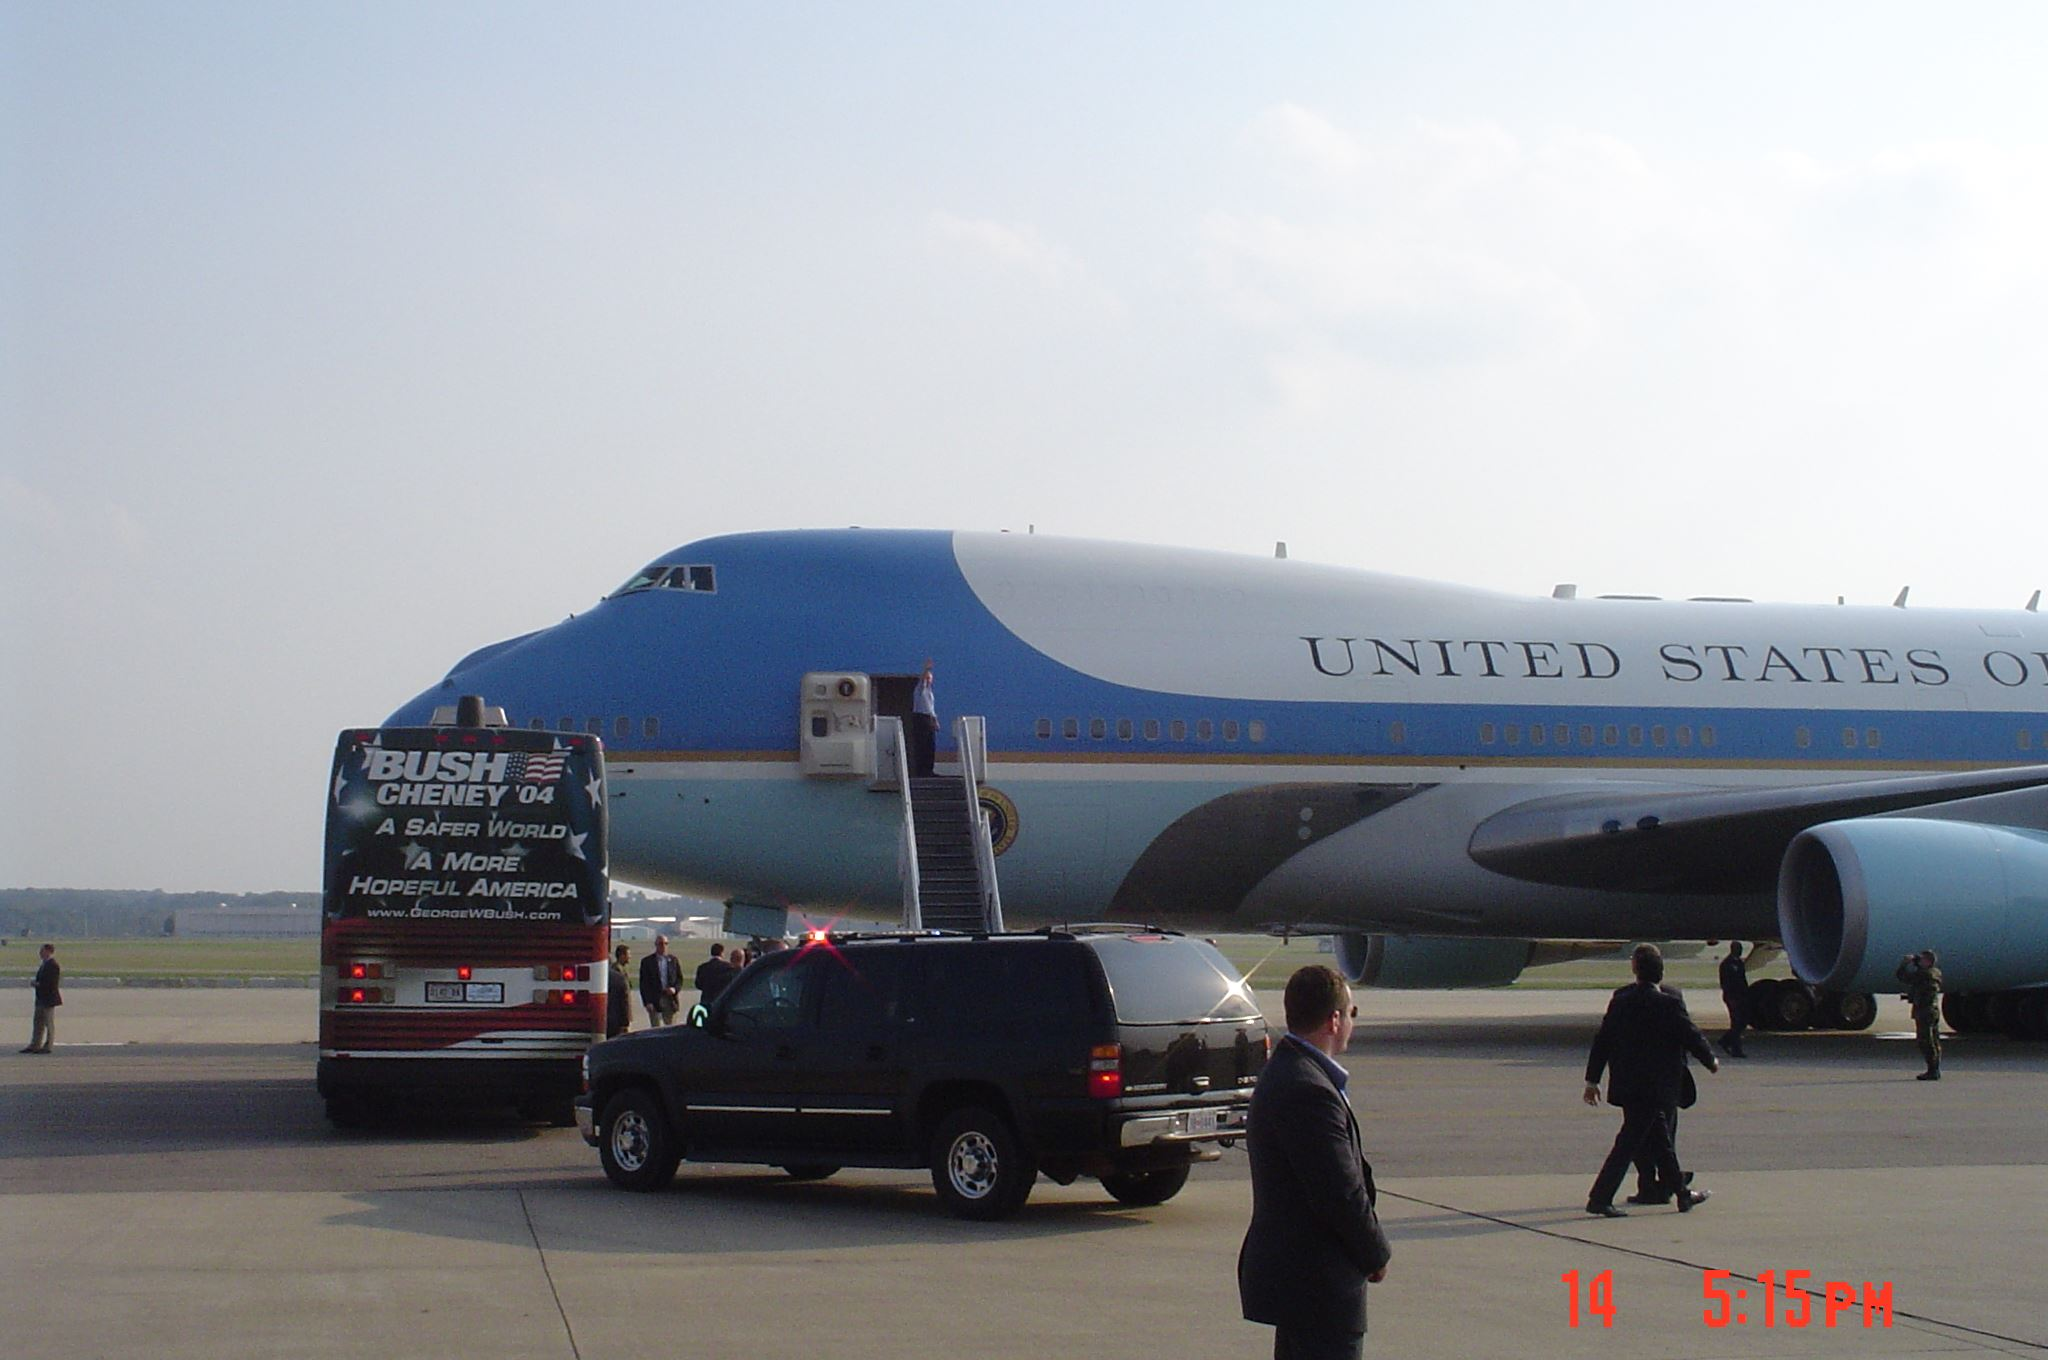 The United States Presidential Airplane